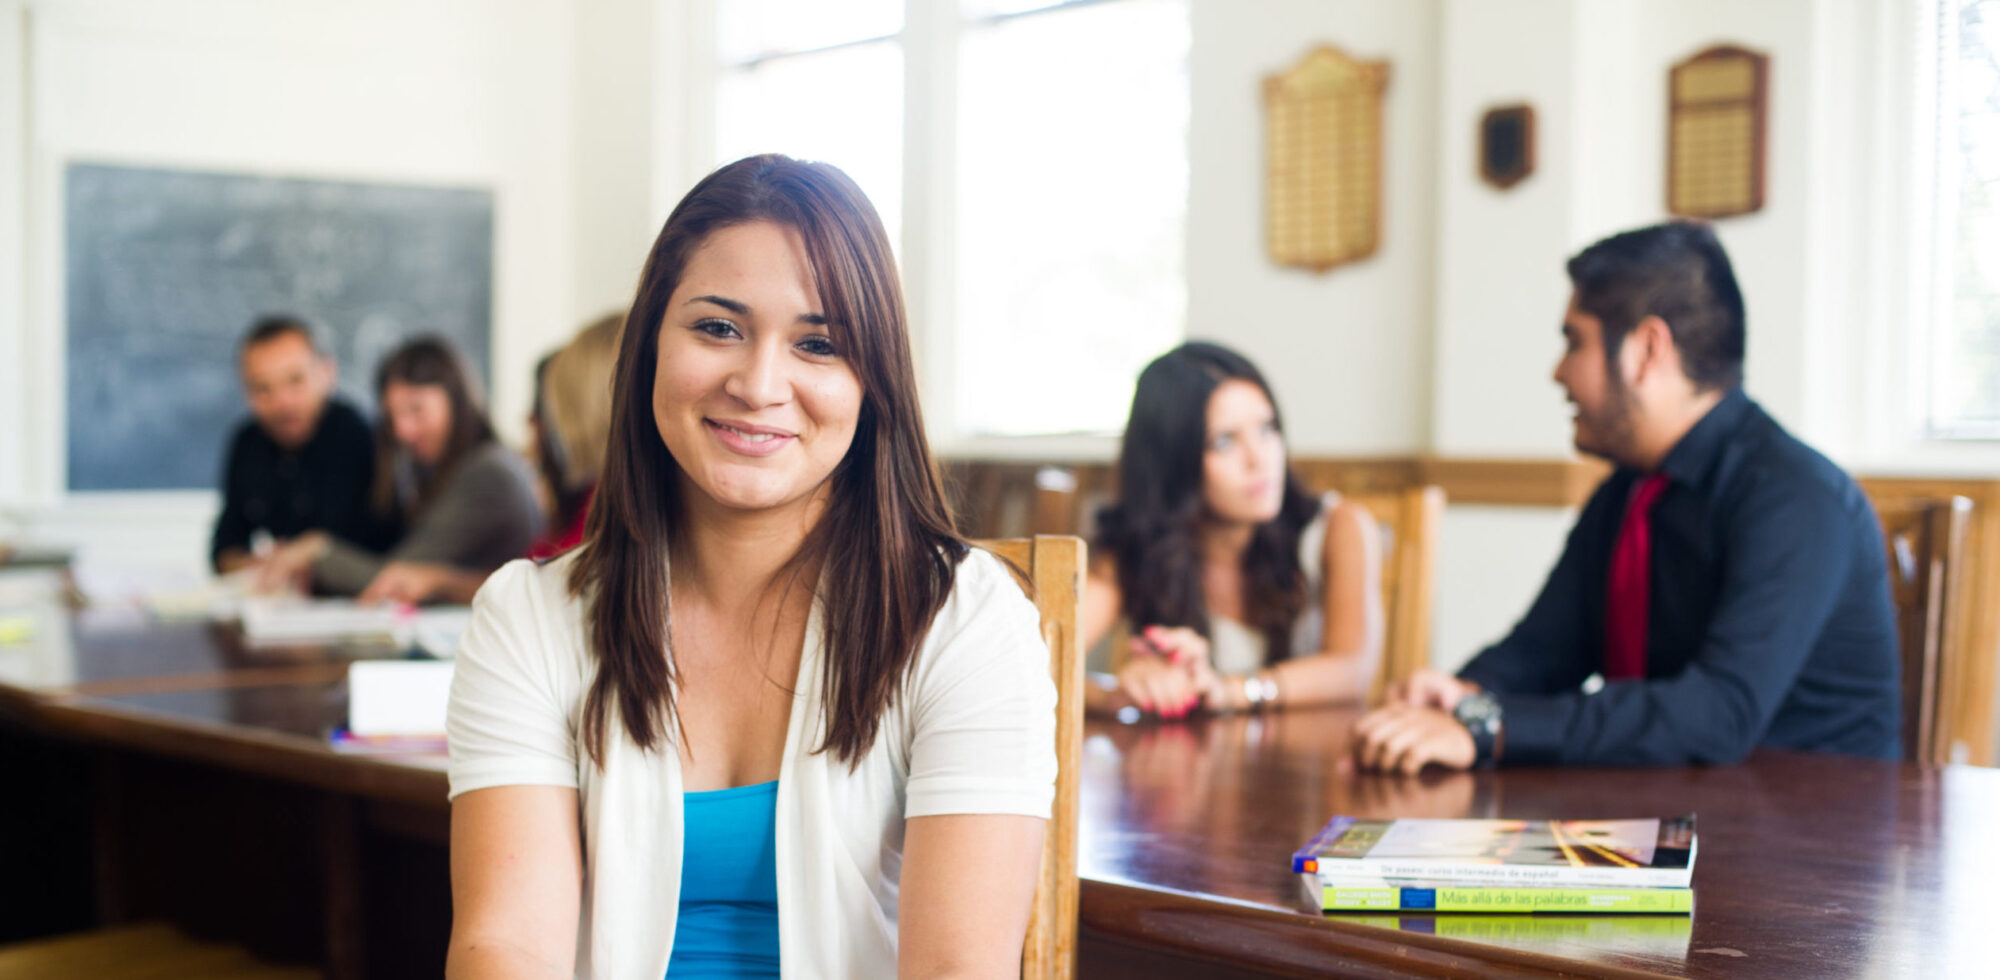 Female student smiling with college classmates at table behind her.